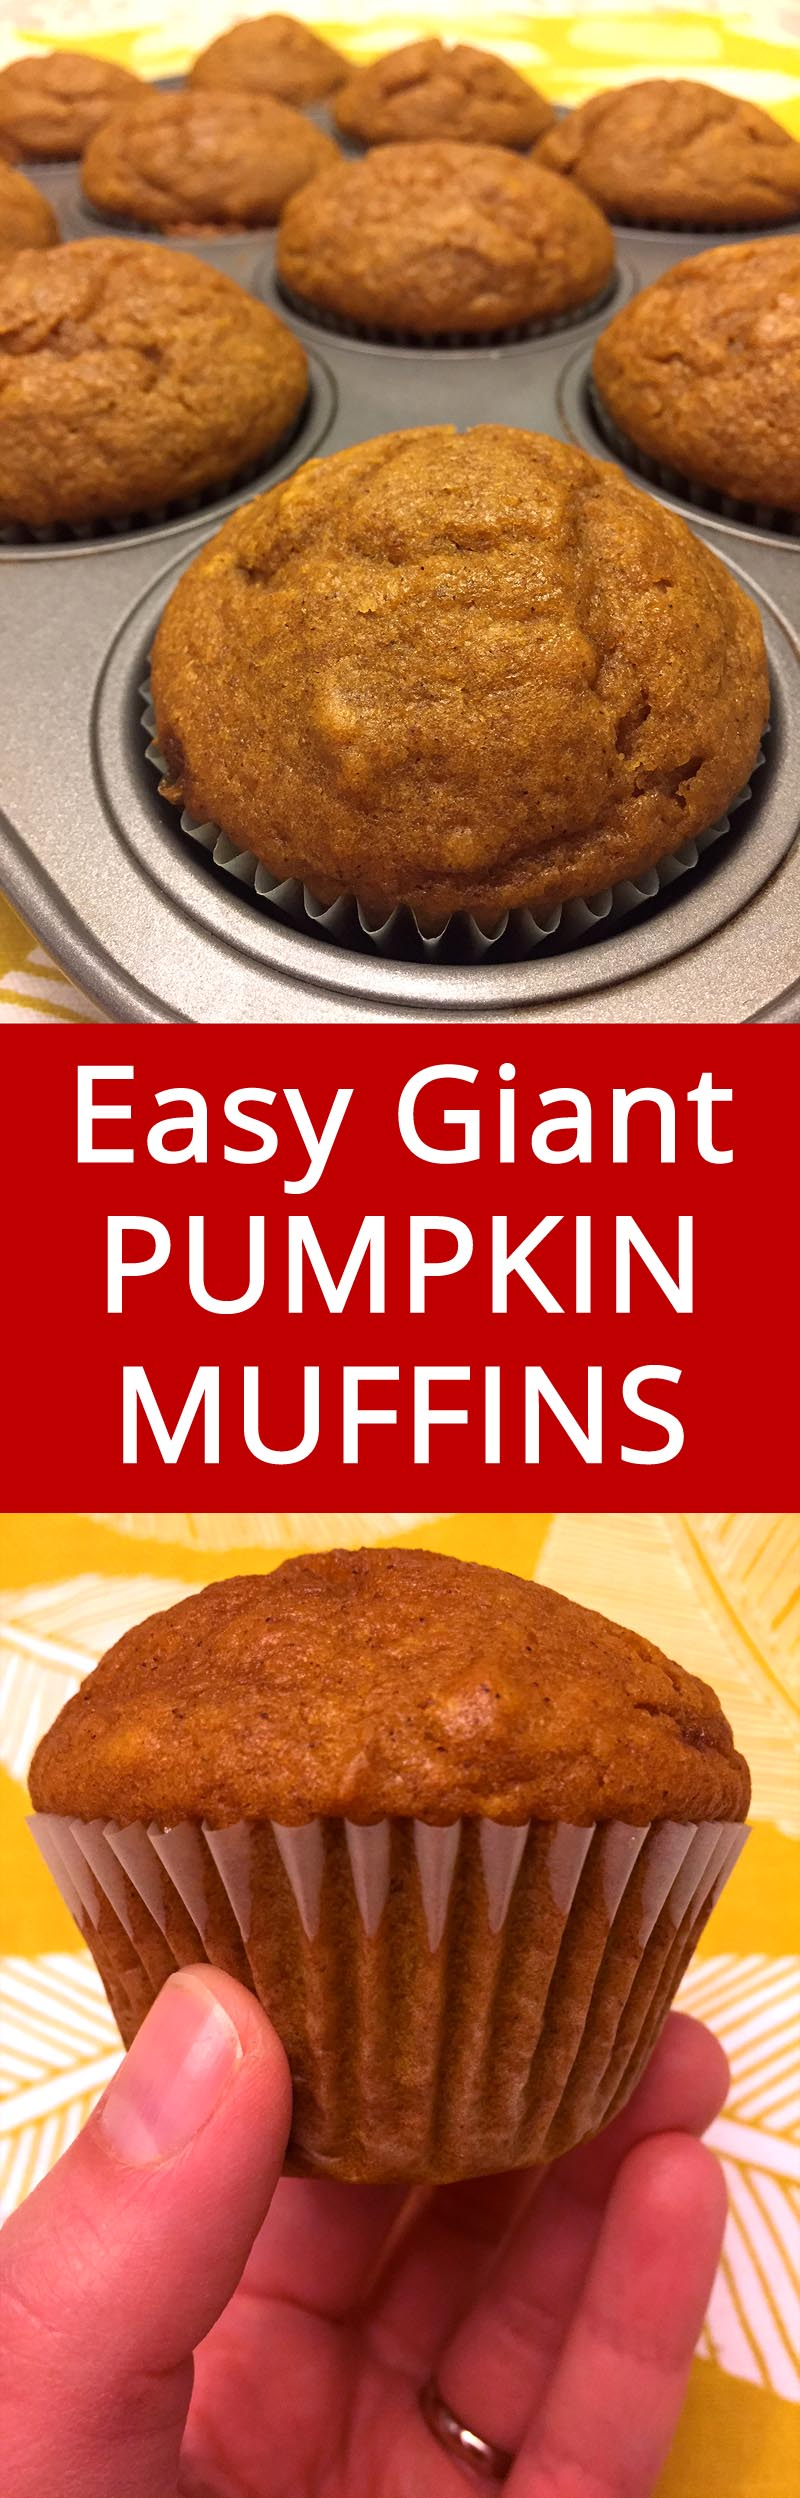 These pumpkin muffins are truly huge and moist, and the texture is best ever!  I love these muffins!   MelanieCooks.com